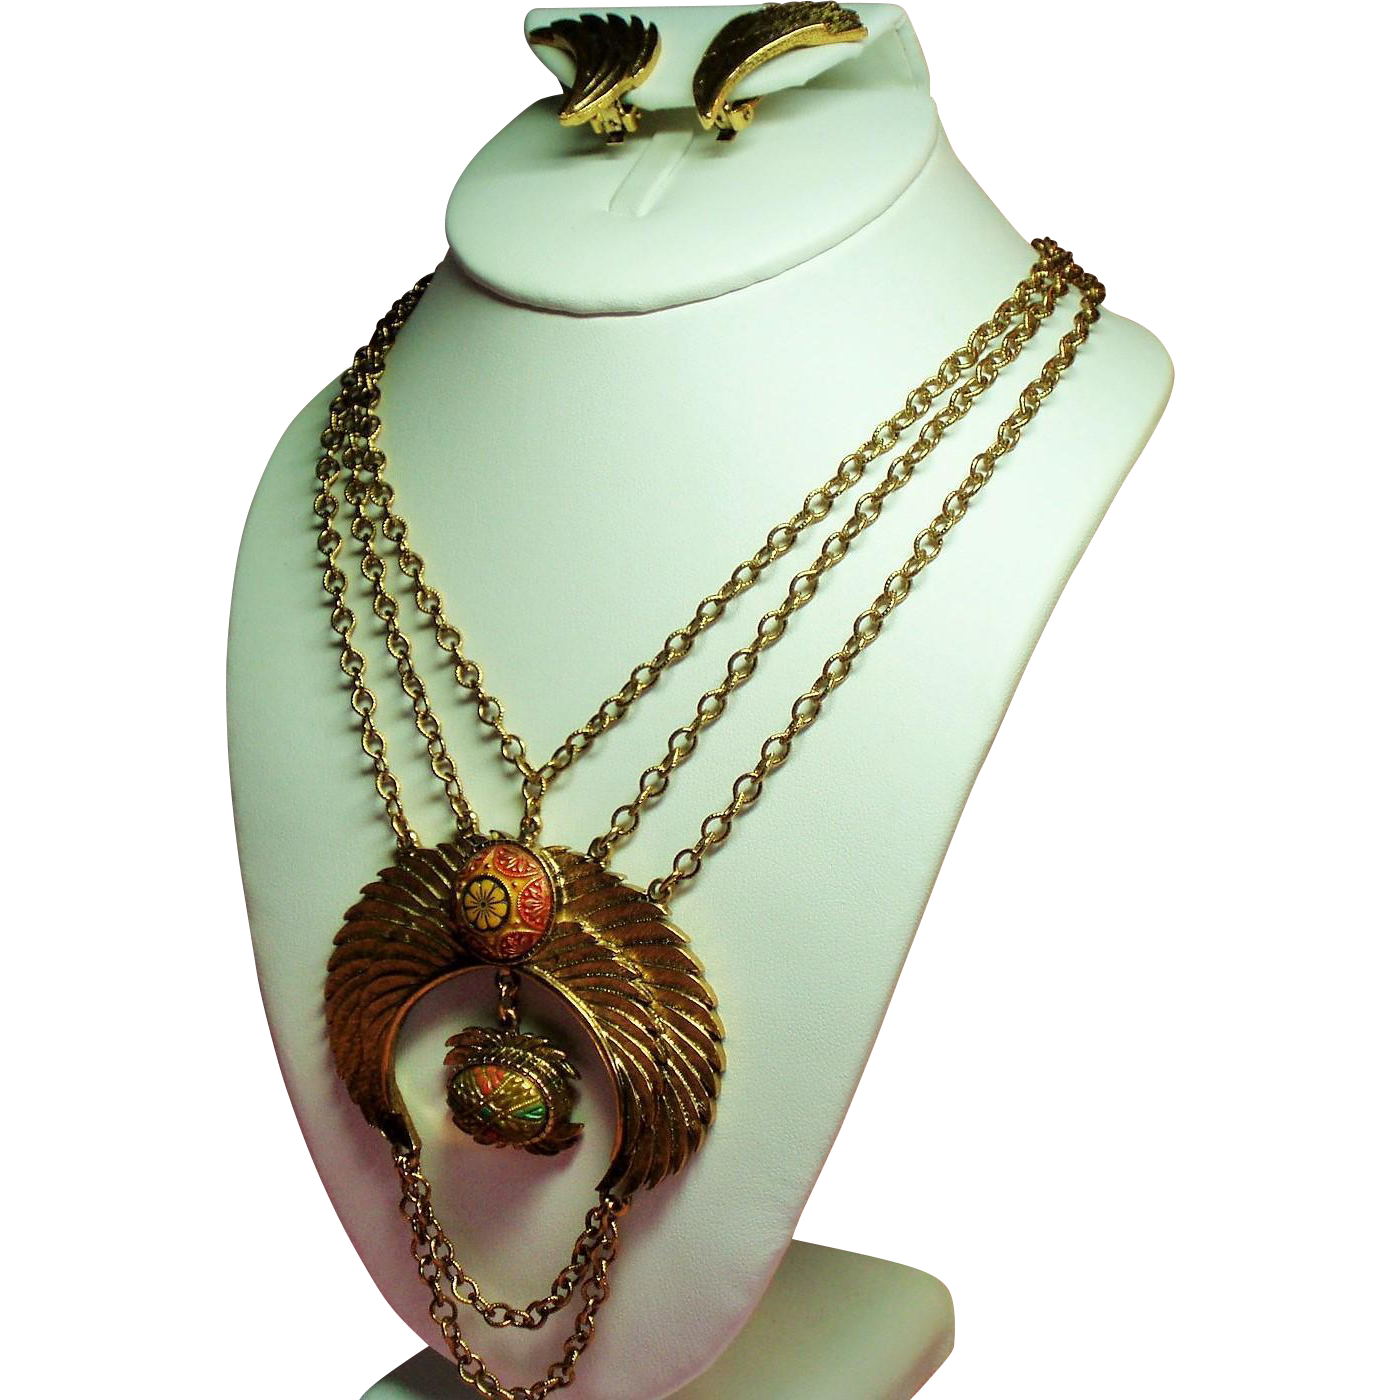 Vintage Hobe Egyptian Revival Moroccan Matrix Huge Swag Necklace Earrings Demi Parure